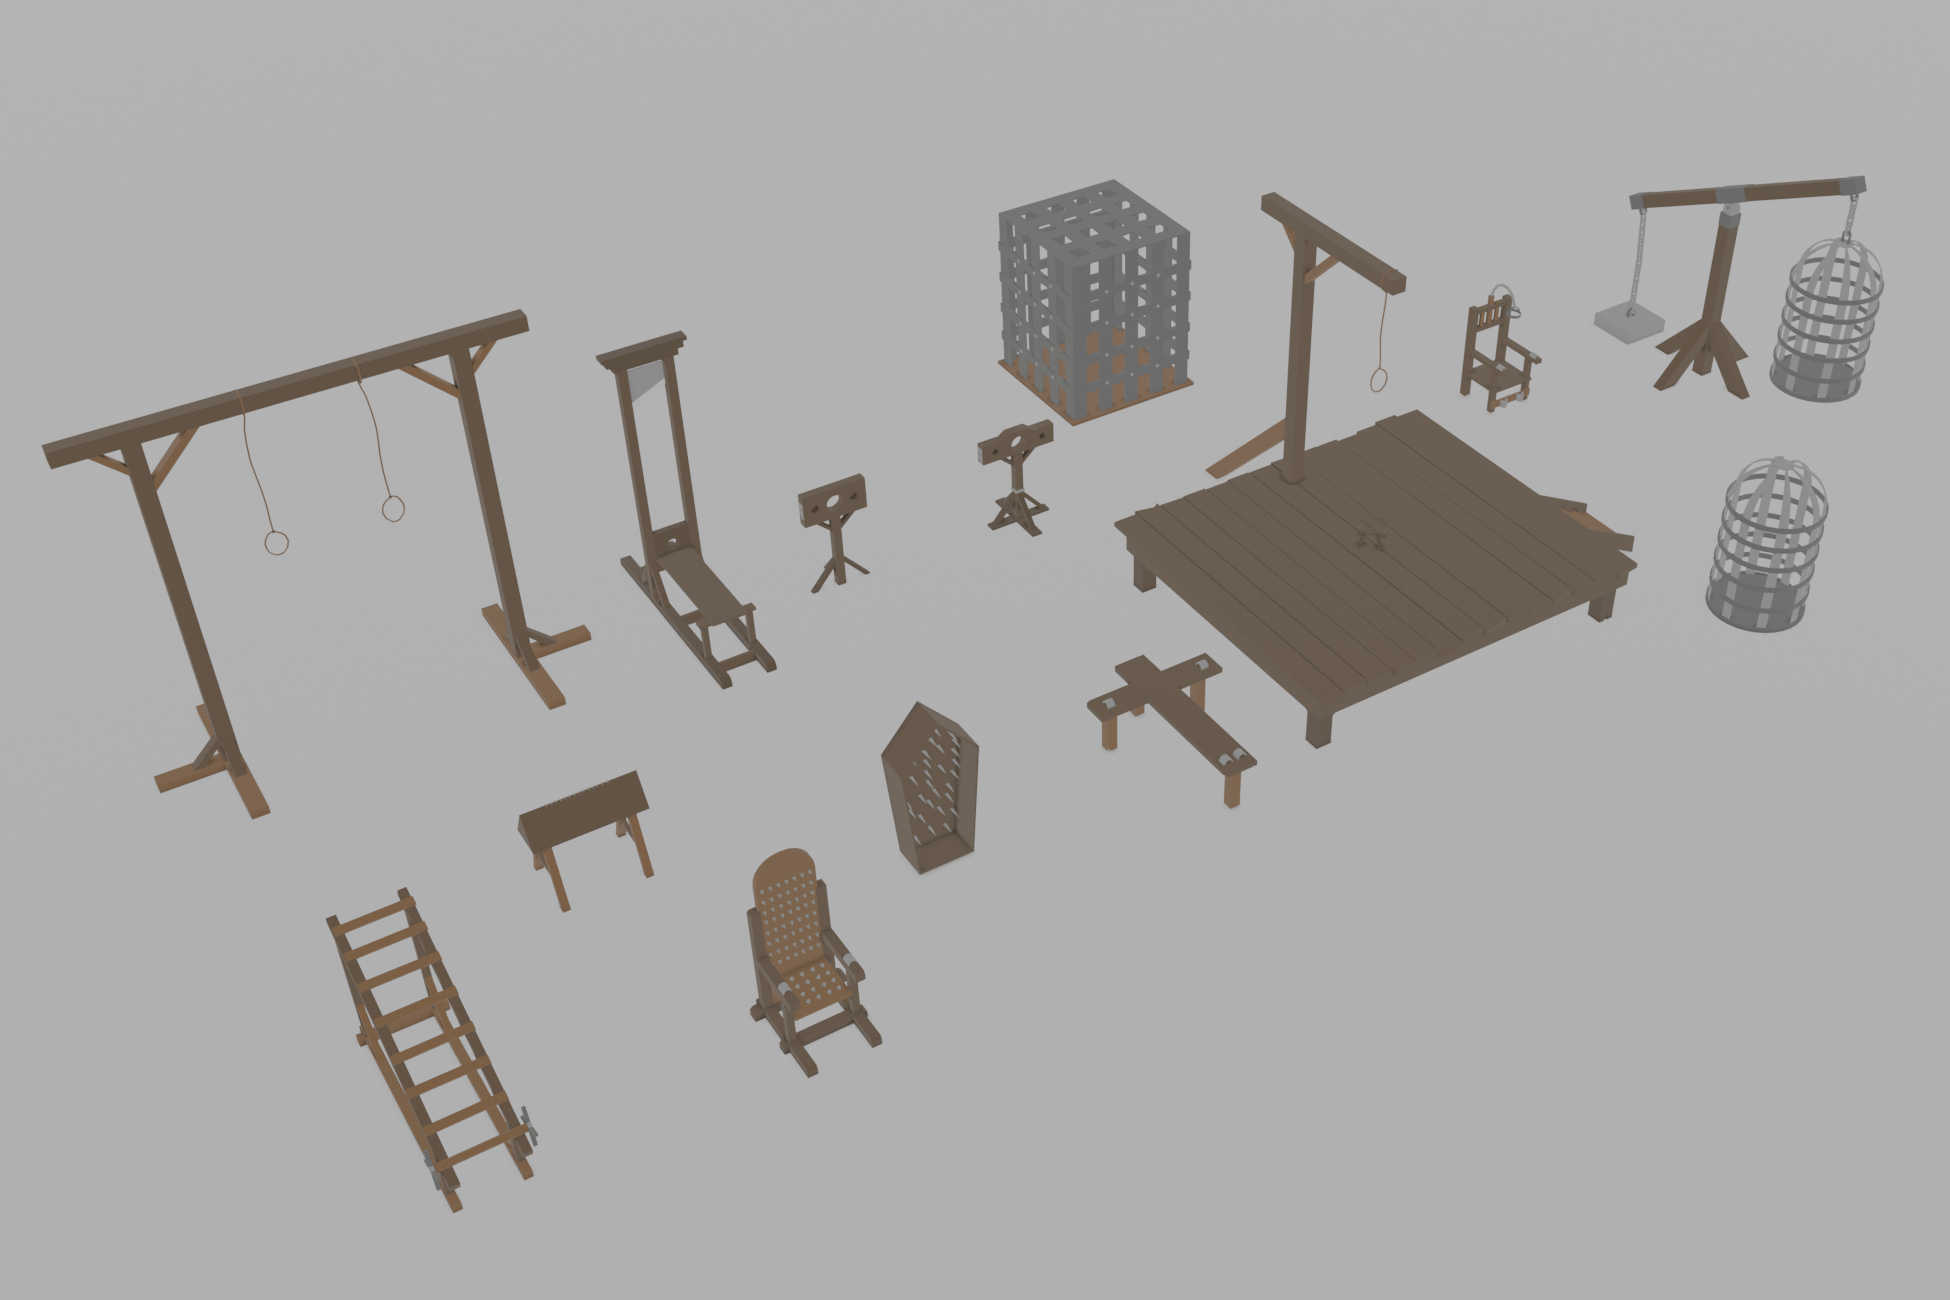 Lowpoly Torture Devices